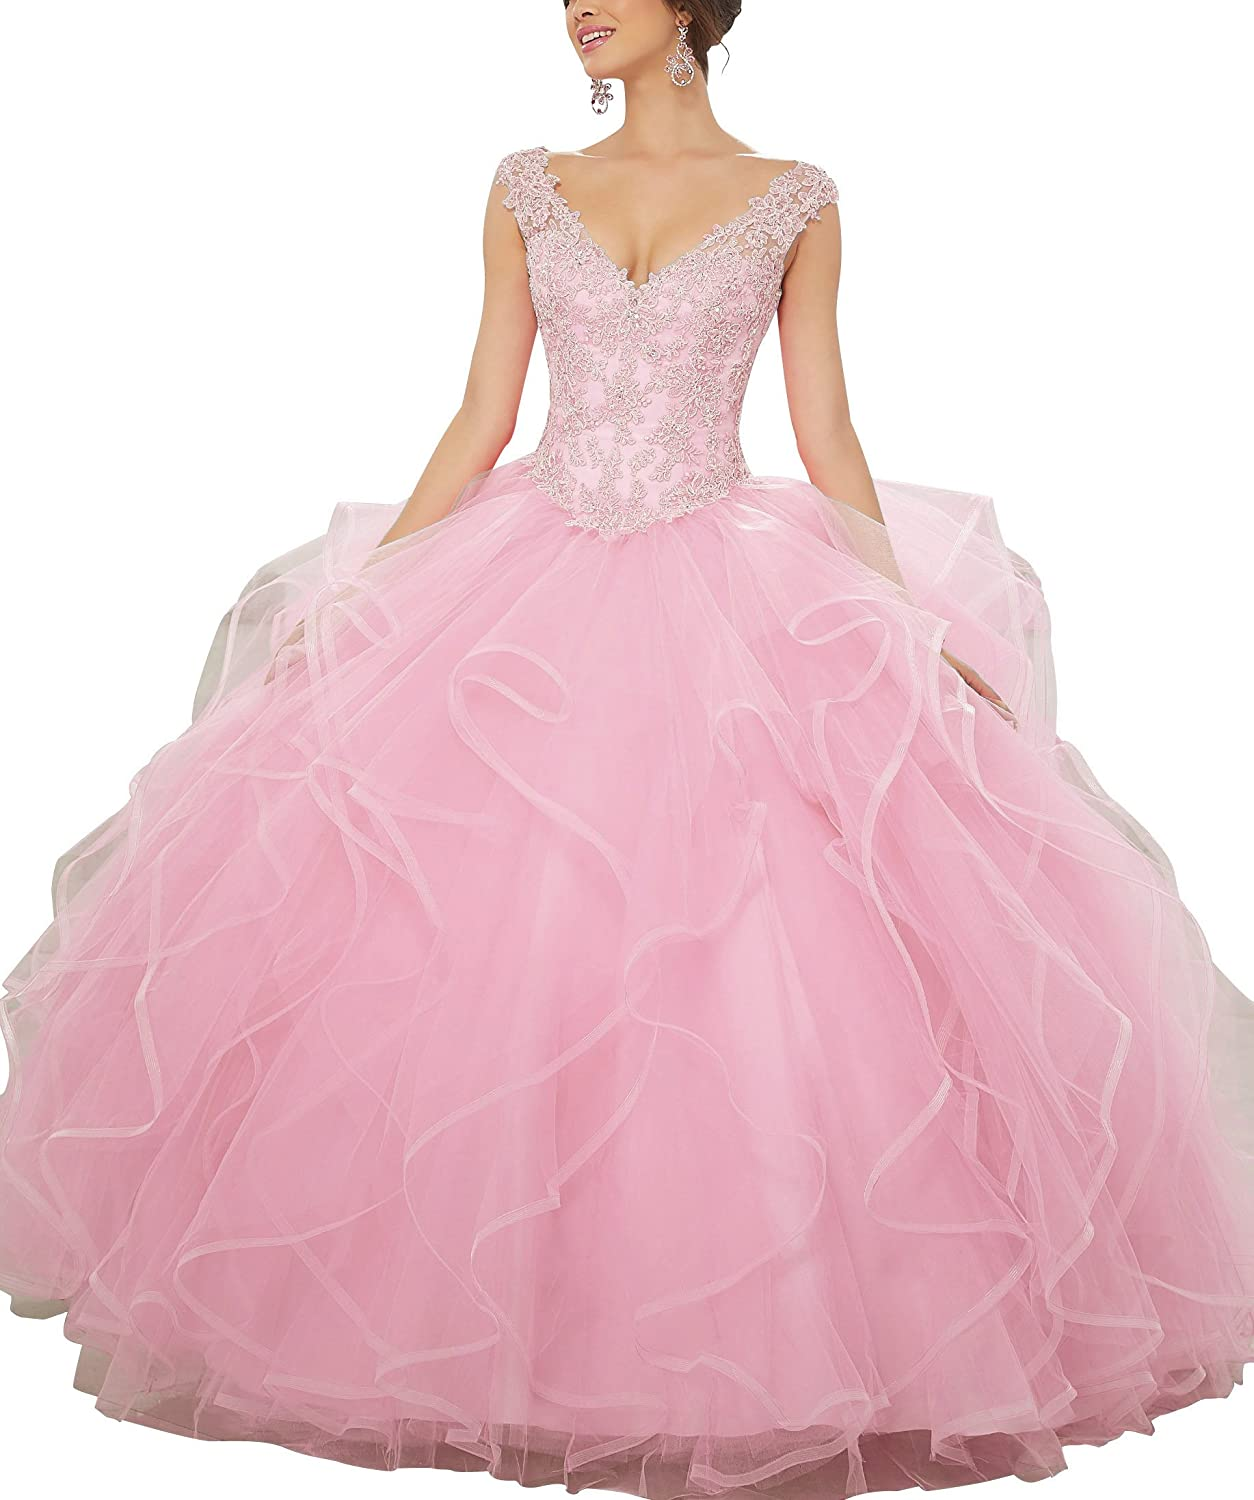 JQLD Ruffles Tulle Ball Gown Quinceanera Dresses Beaded V Neck Long Prom Gown Formal Pink US12